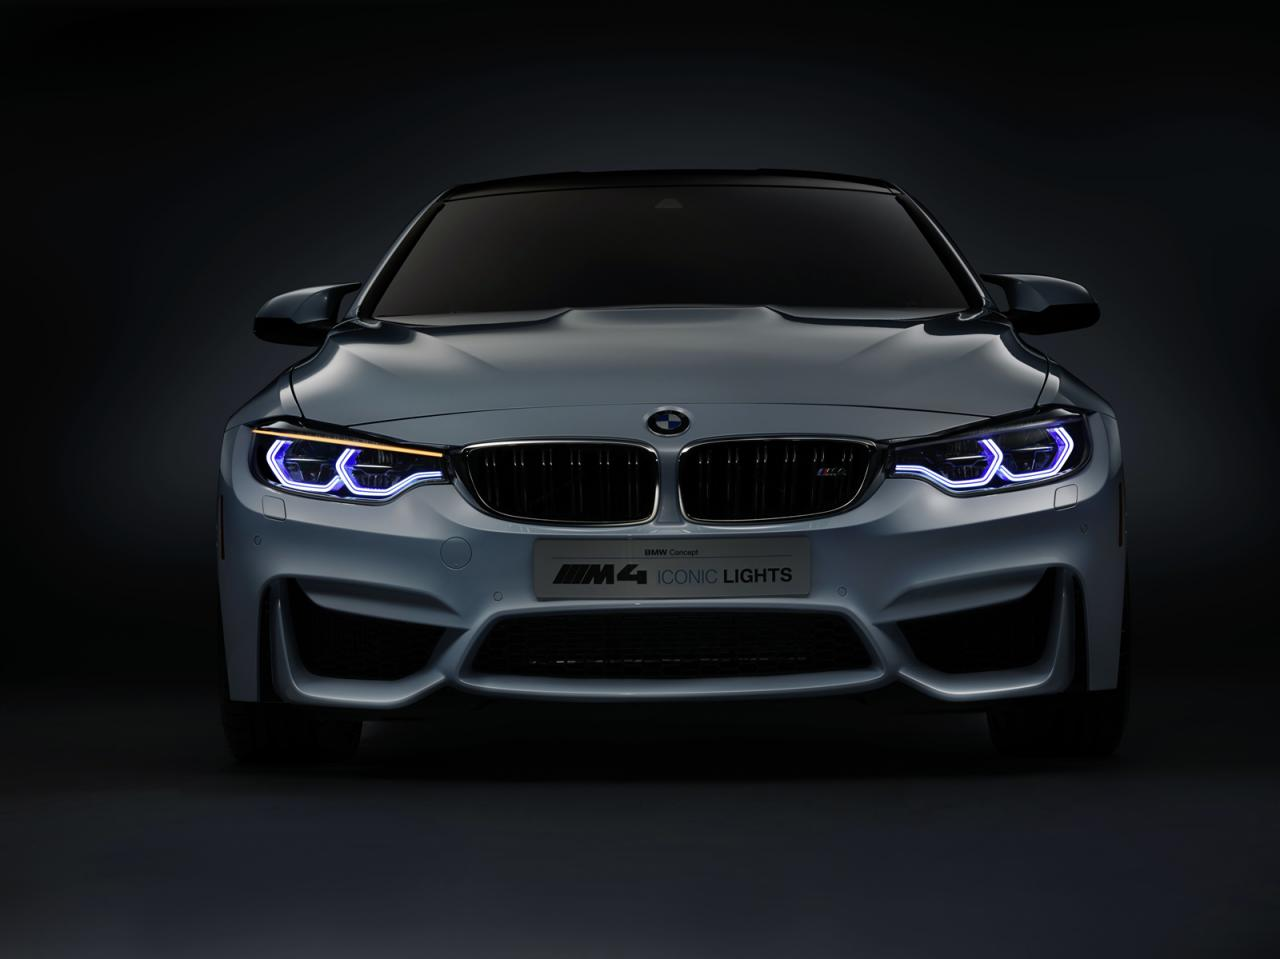 BMW M4 Concept Iconic Lights shows up in Vegas